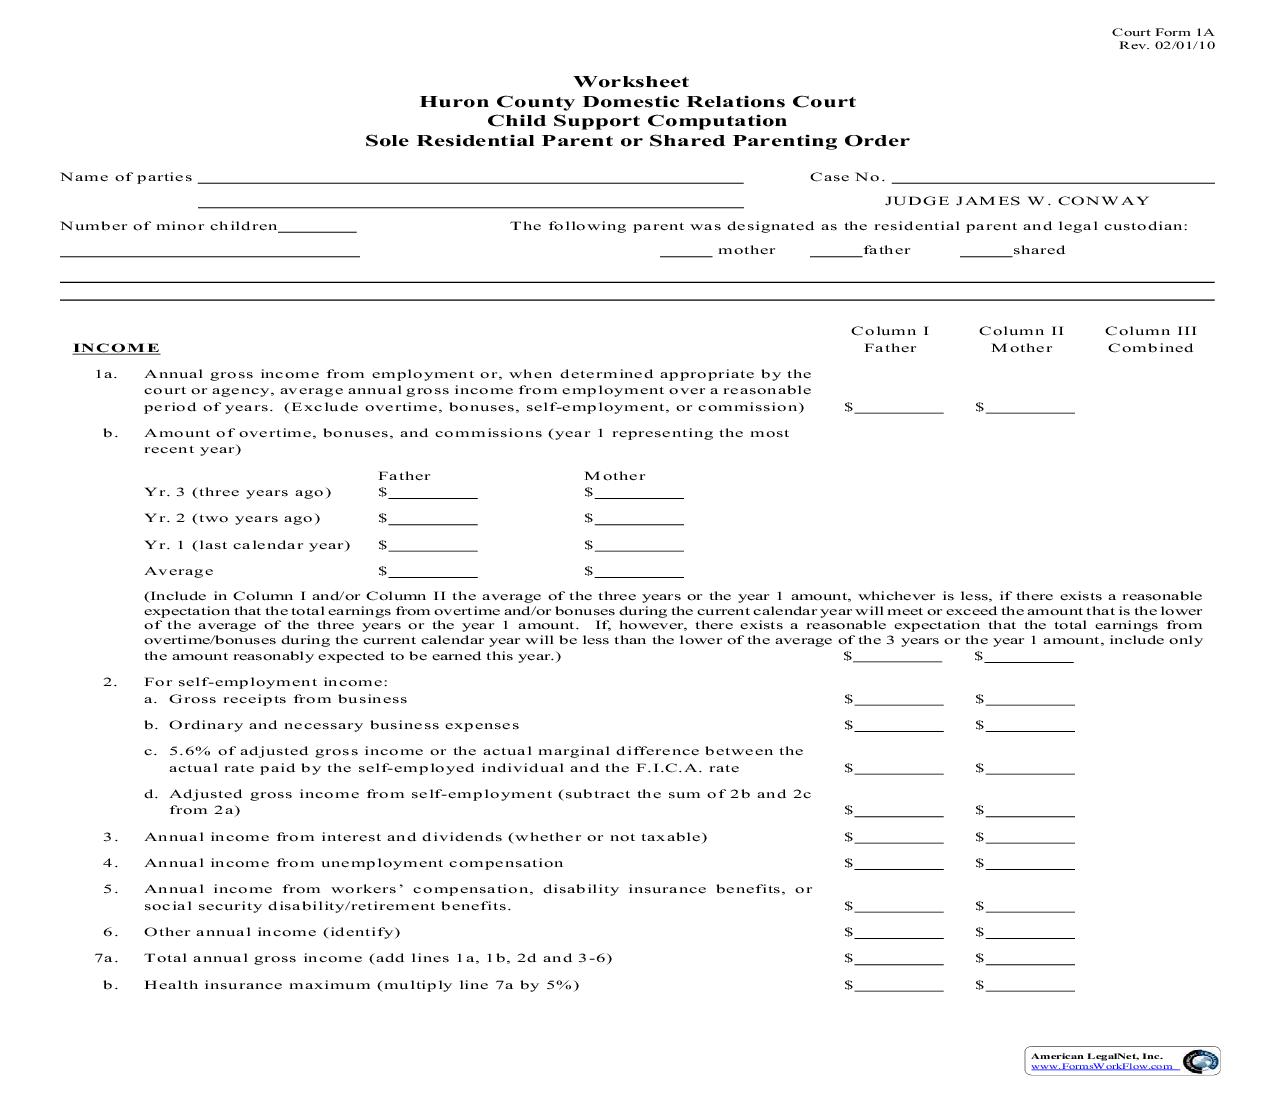 Worksheet Child Support Computation Sole Residential Parent Or Shared Parenting Order {1A} | Pdf Fpdf Doc Docx | Ohio